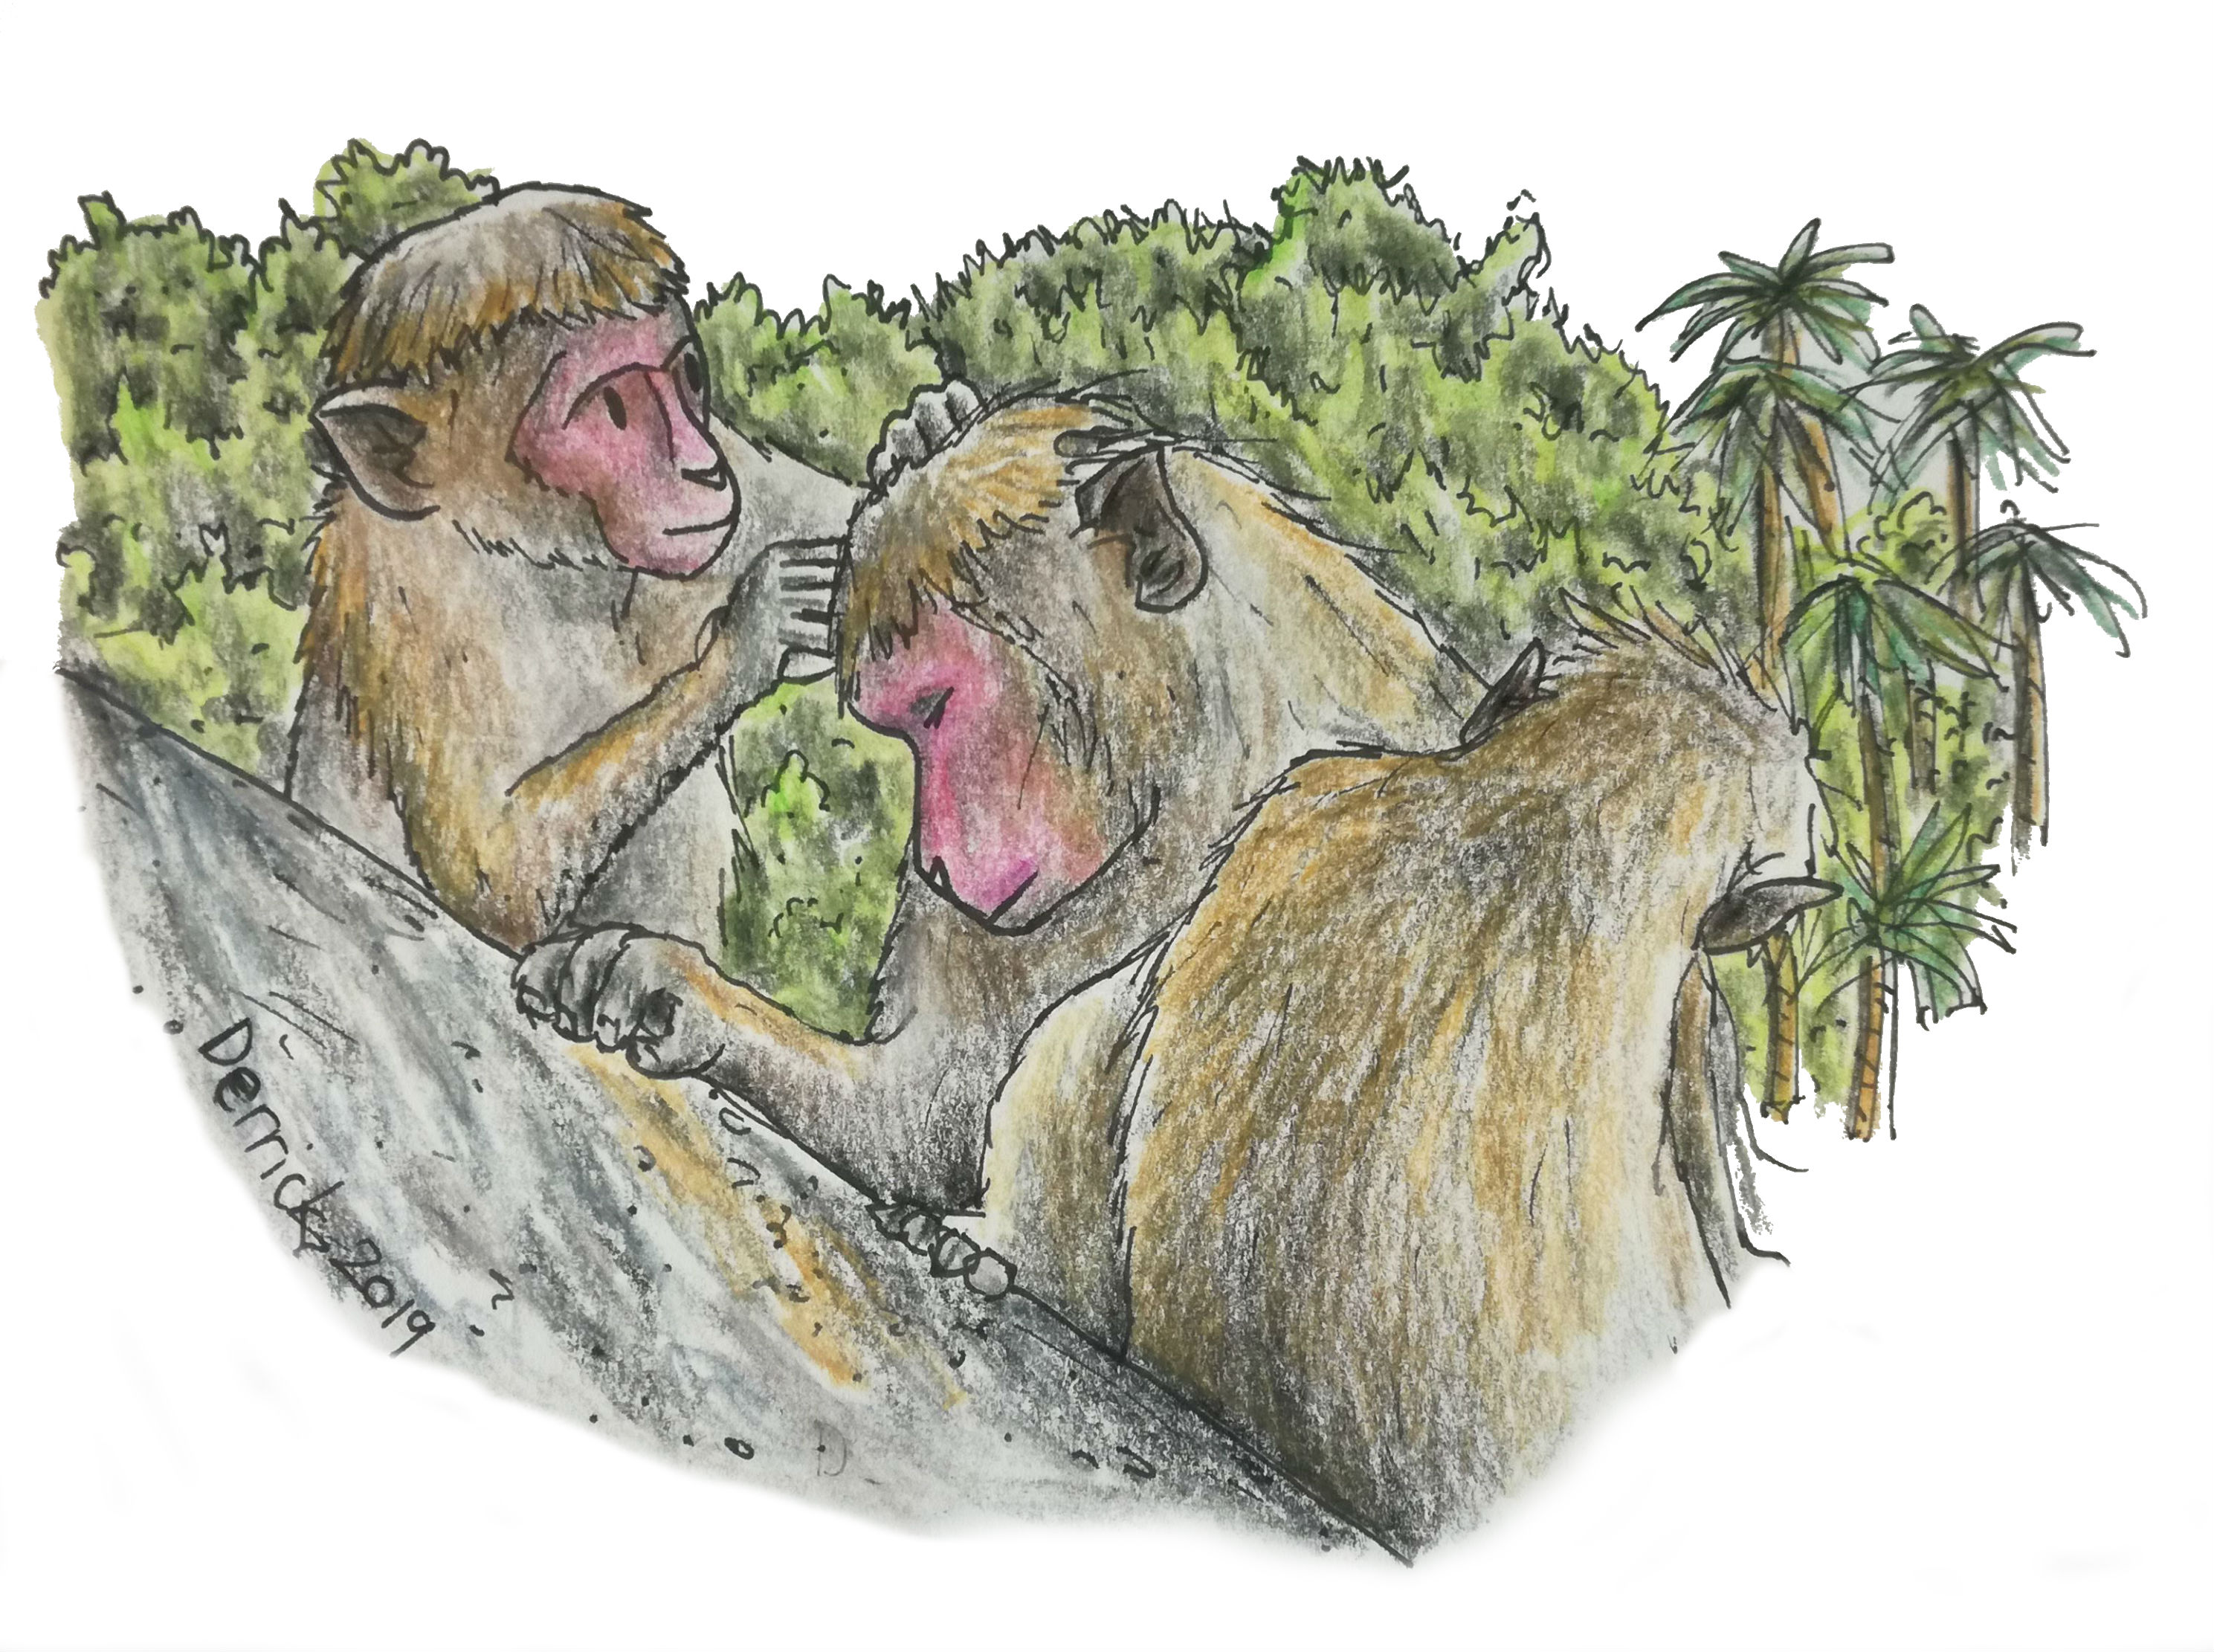 Sketch of toque macaques grooming